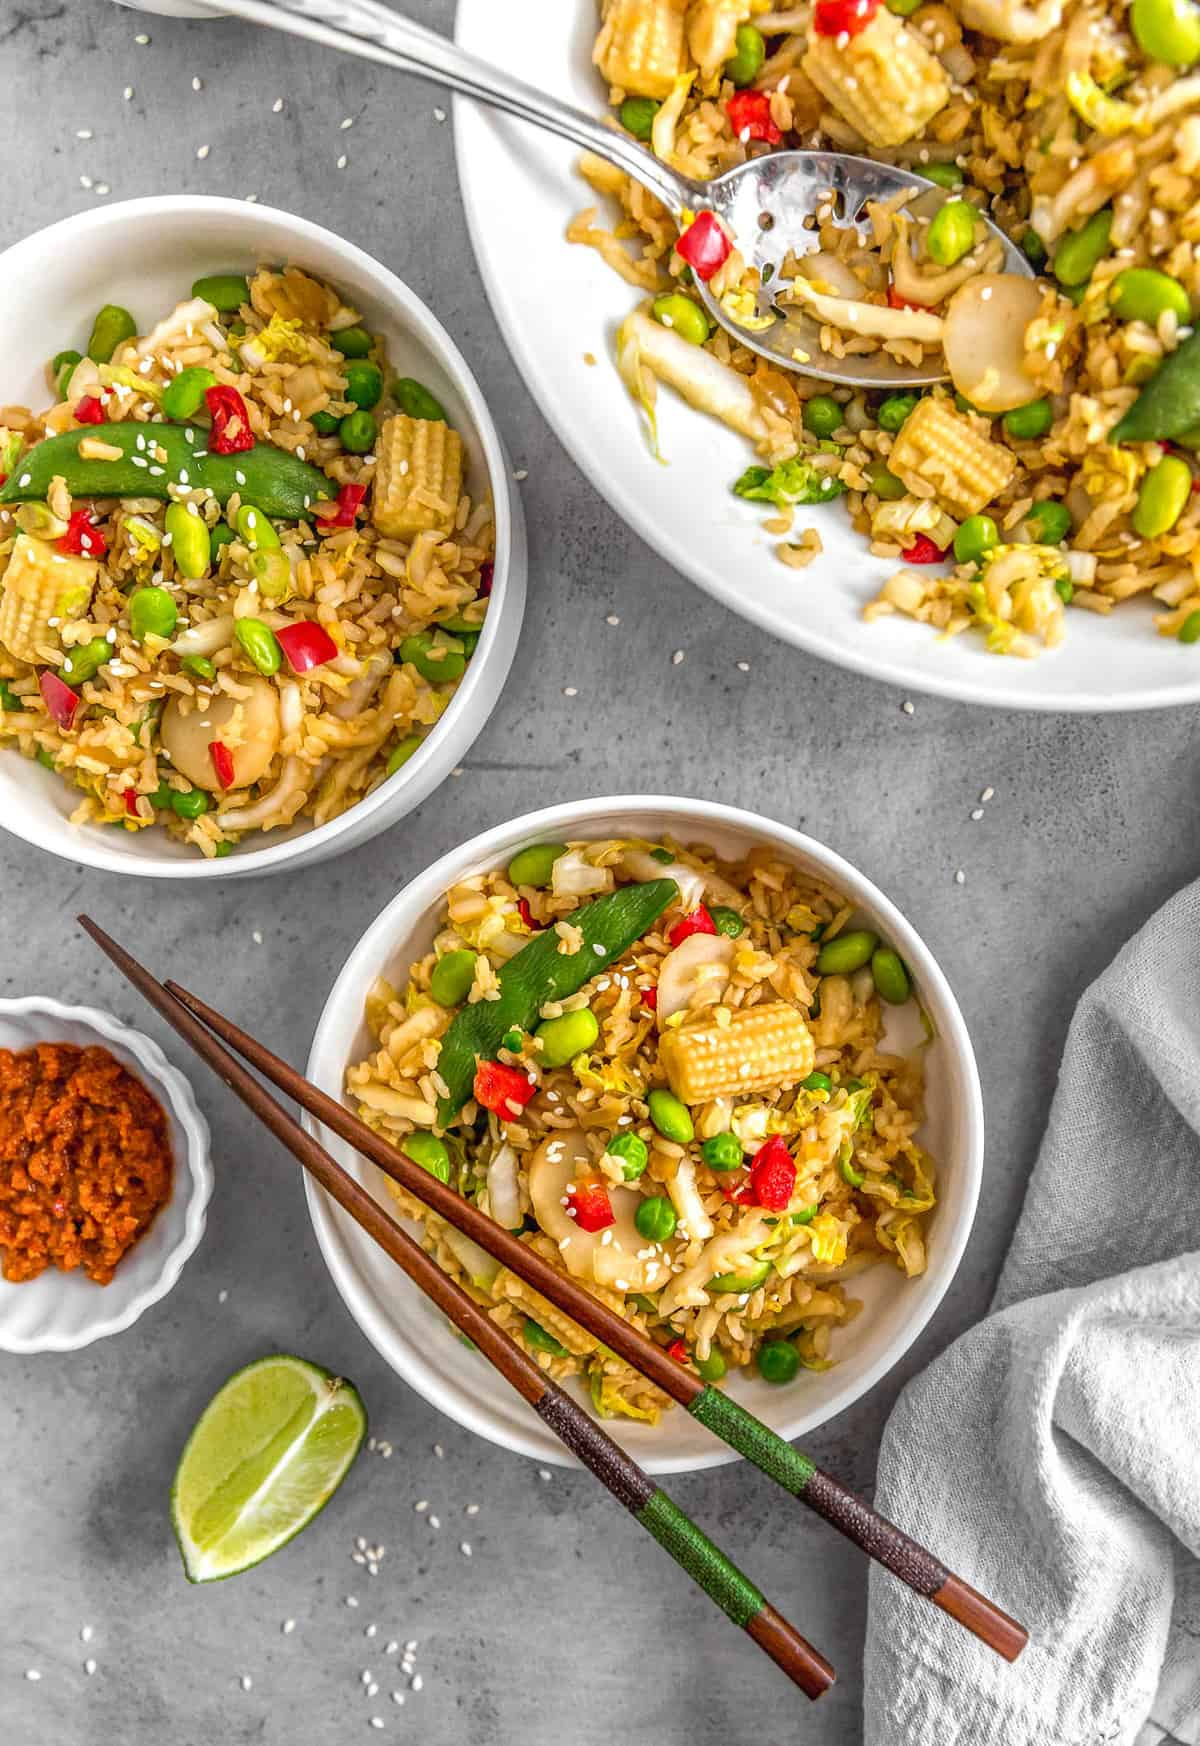 Cabbage Fried Rice, plant based, vegan, vegetarian, whole food plant based, gluten free, recipe, wfpb, healthy, healthy vegan, oil free, no refined sugar, no oil, refined sugar free, dairy free, veggies, vegetables, fried rice, dinner, rice, Asian recipes, cabbage